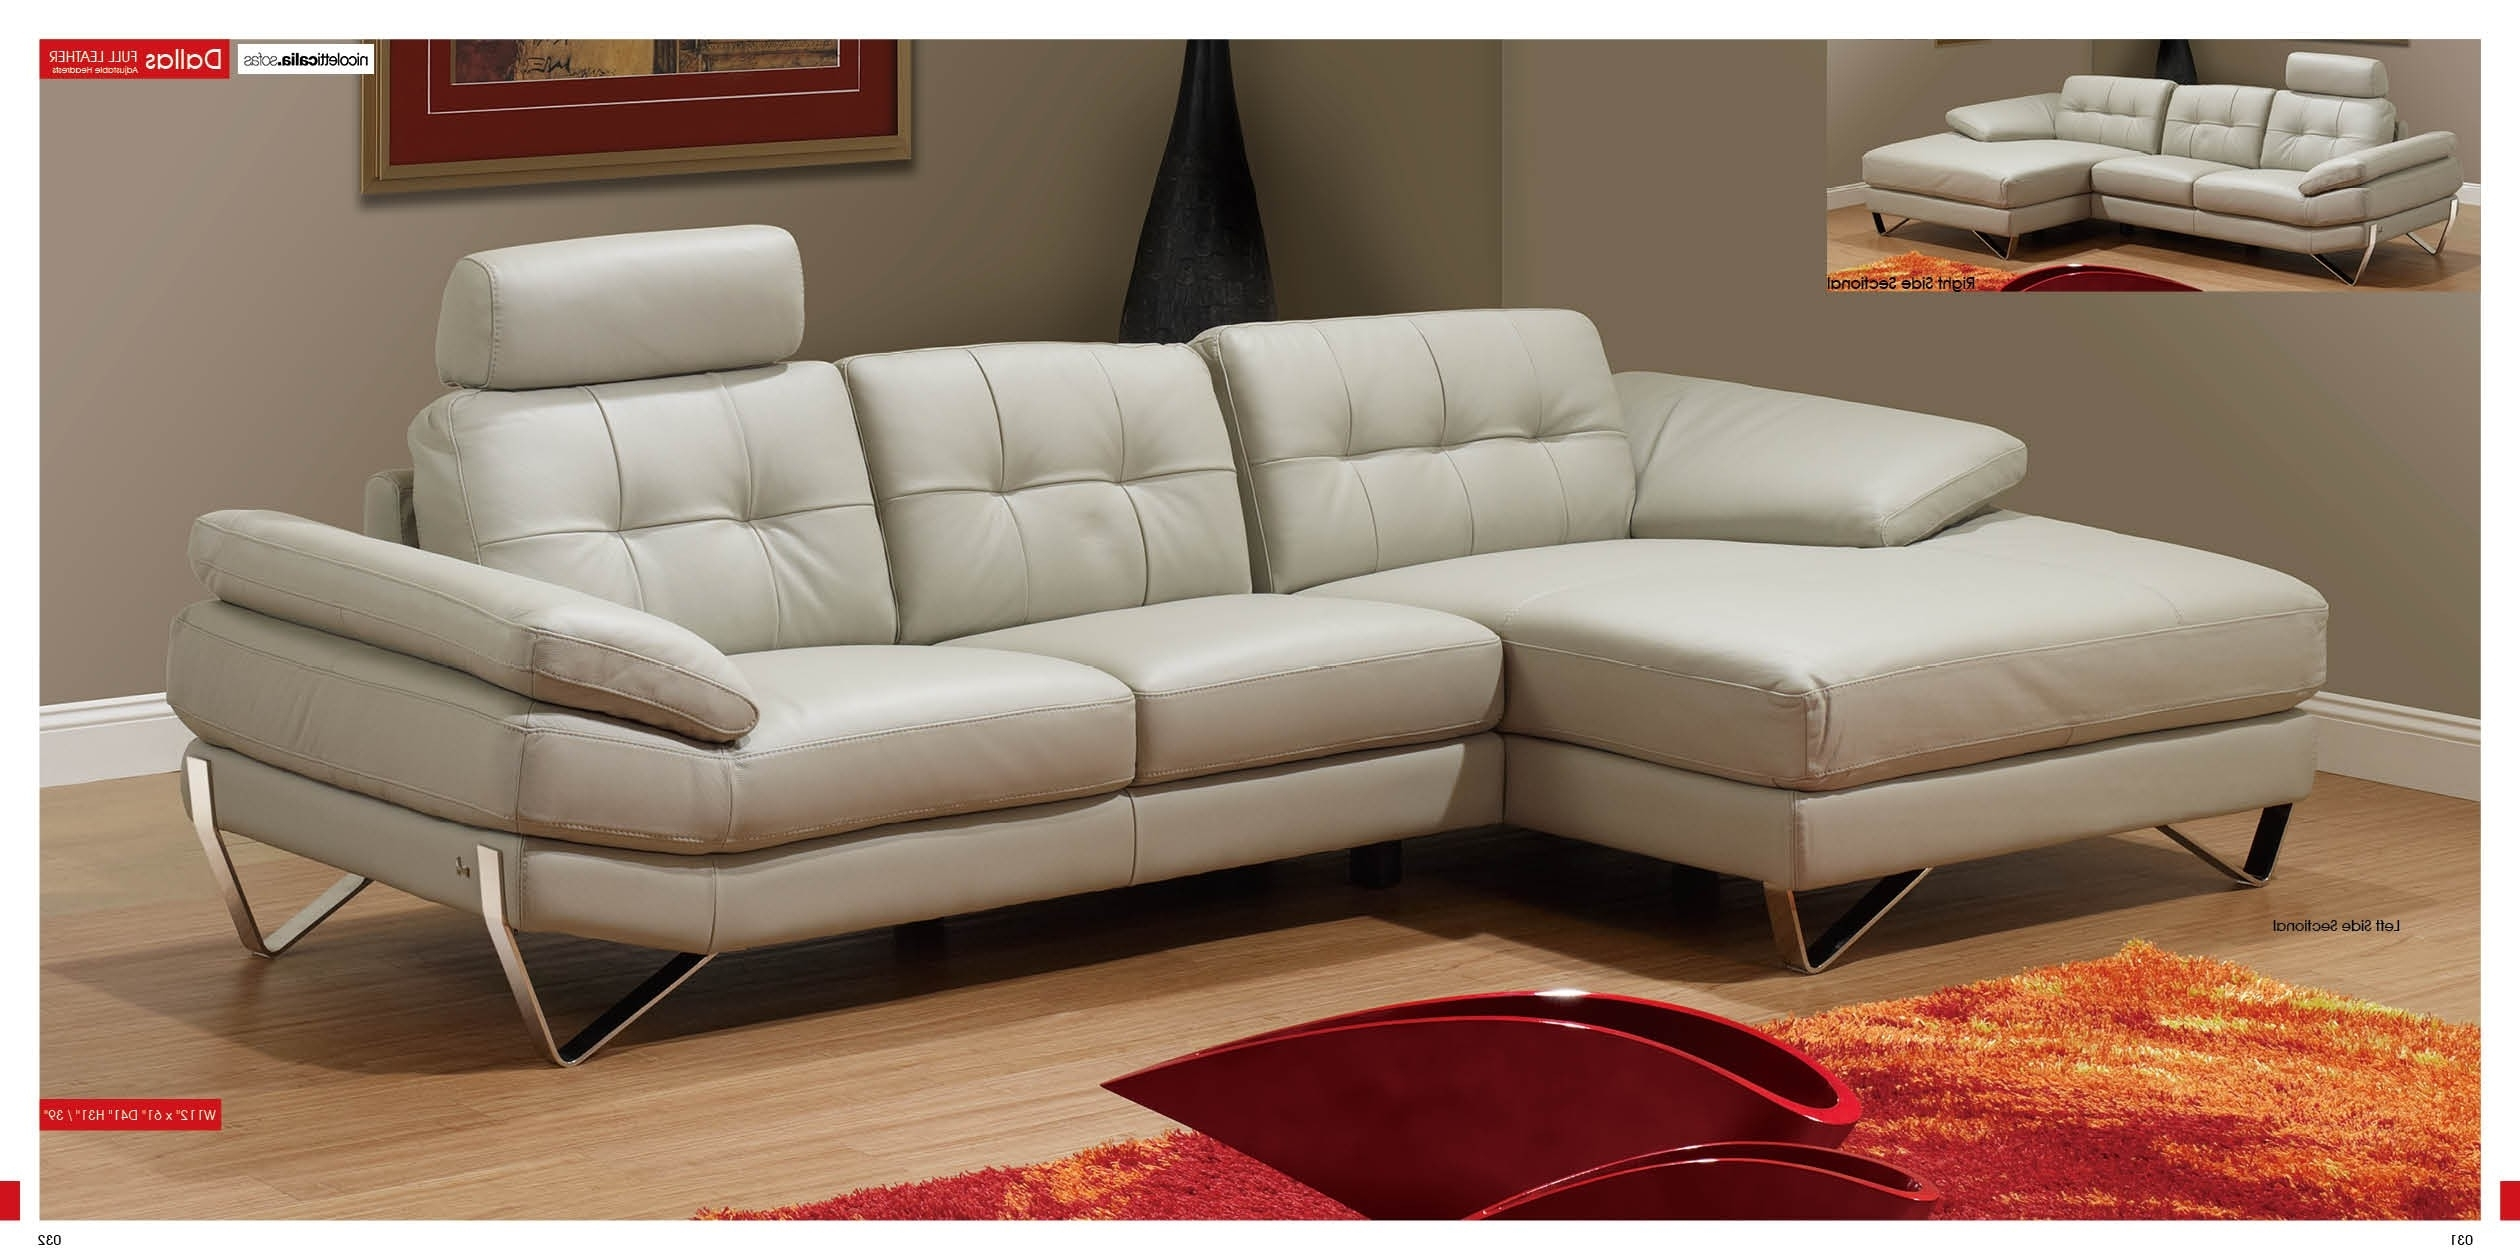 Furniture & Sofa: Glamorous Interior Furniture Designhavertys Pertaining To Popular Macon Ga Sectional Sofas (View 13 of 20)